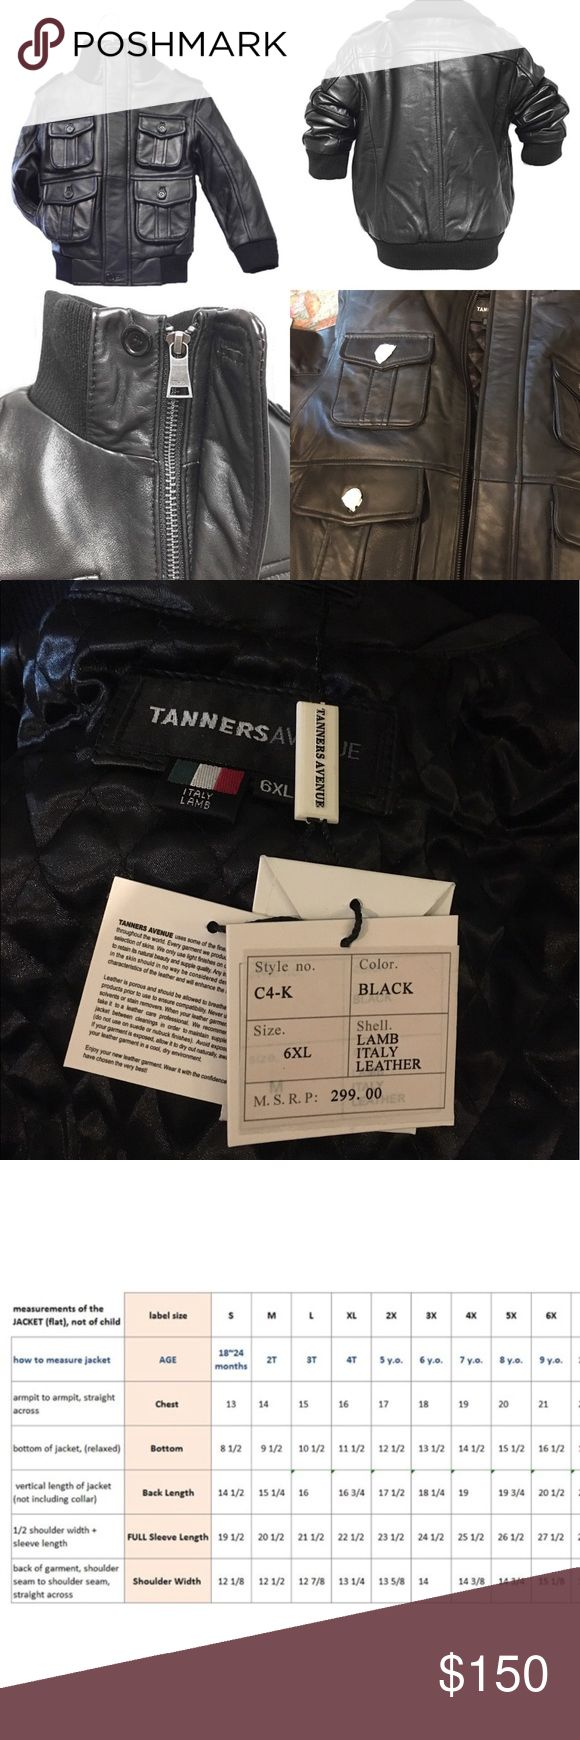 Black Leather Military Kids Bomber Jacket Brand new with tags!!, Can be worn for boys or girls size 6X, 100% Soft, Authentic Lambskin Leather,Bellowed pockets(2 top & 2 bottom) & all buttons are secured with mini-buttons Shoulder epailets secured by buttons,  front zipper .                                                                                                    💰Will consider official offers  📬 Fast shipping  🏡 Smoke & pet free home  📦 Bundle to save 20% 💕 Share for share…